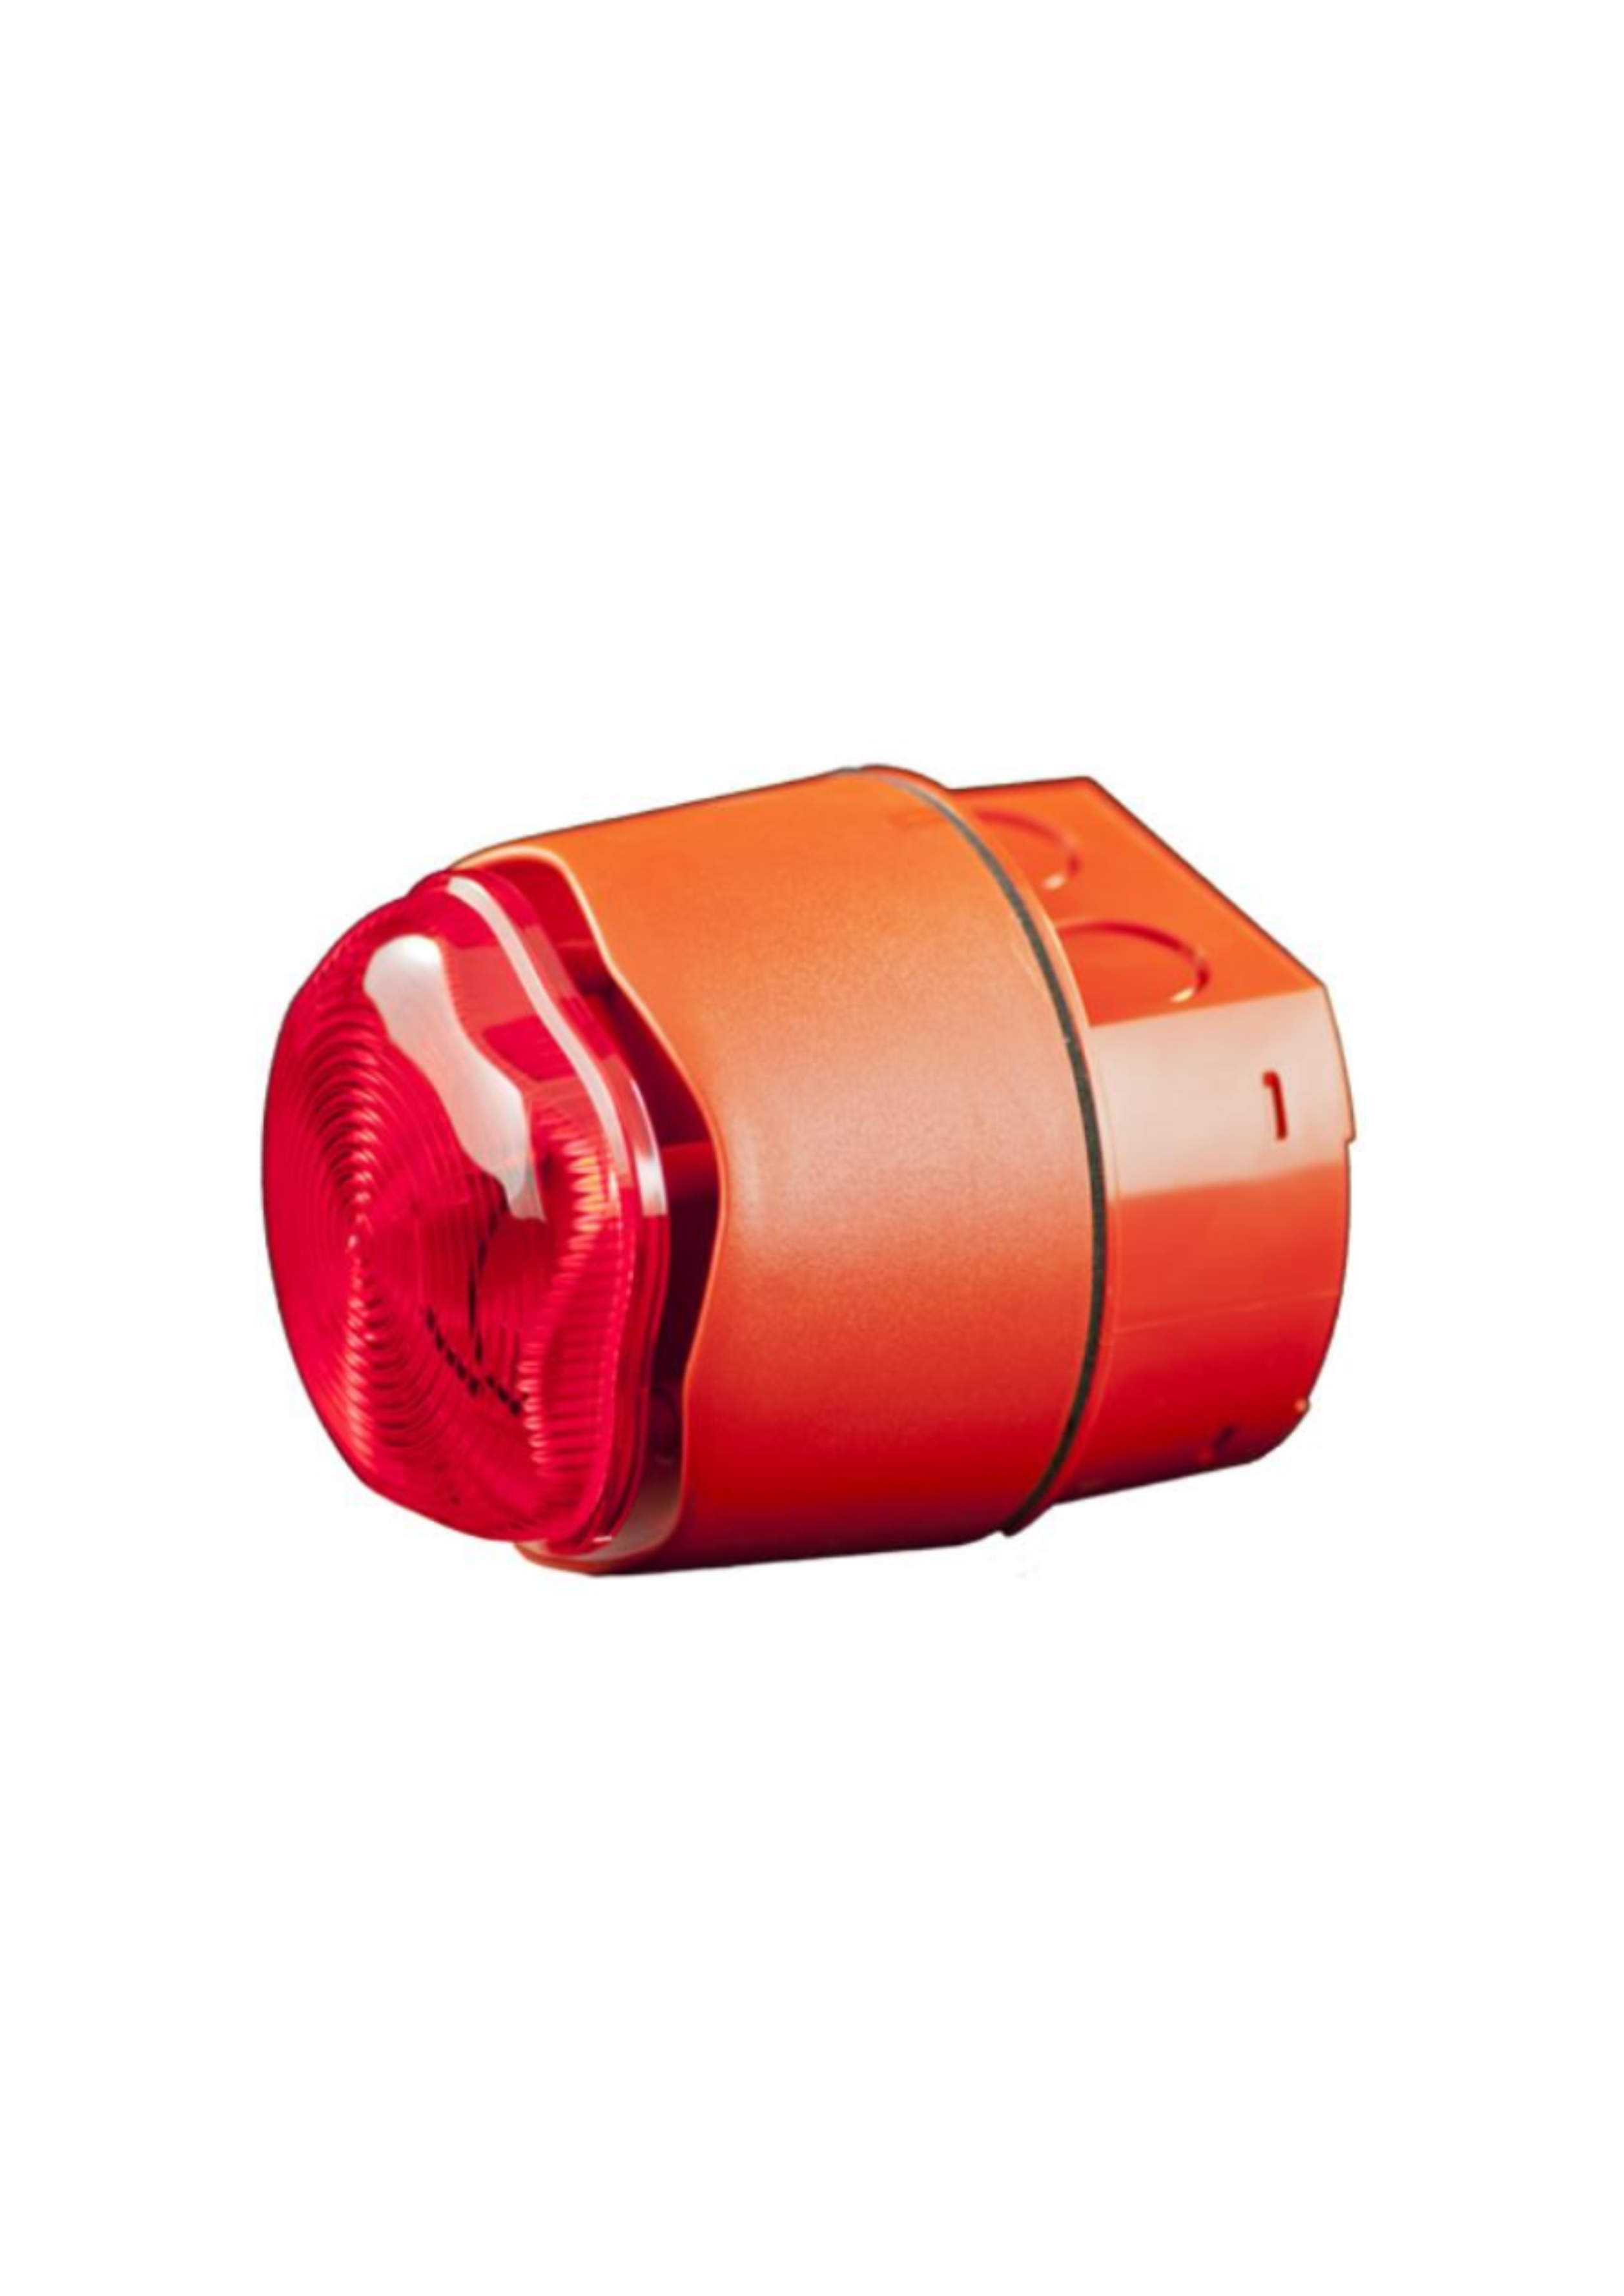 Conventional Weatherproof Sounder Beacon (red case...